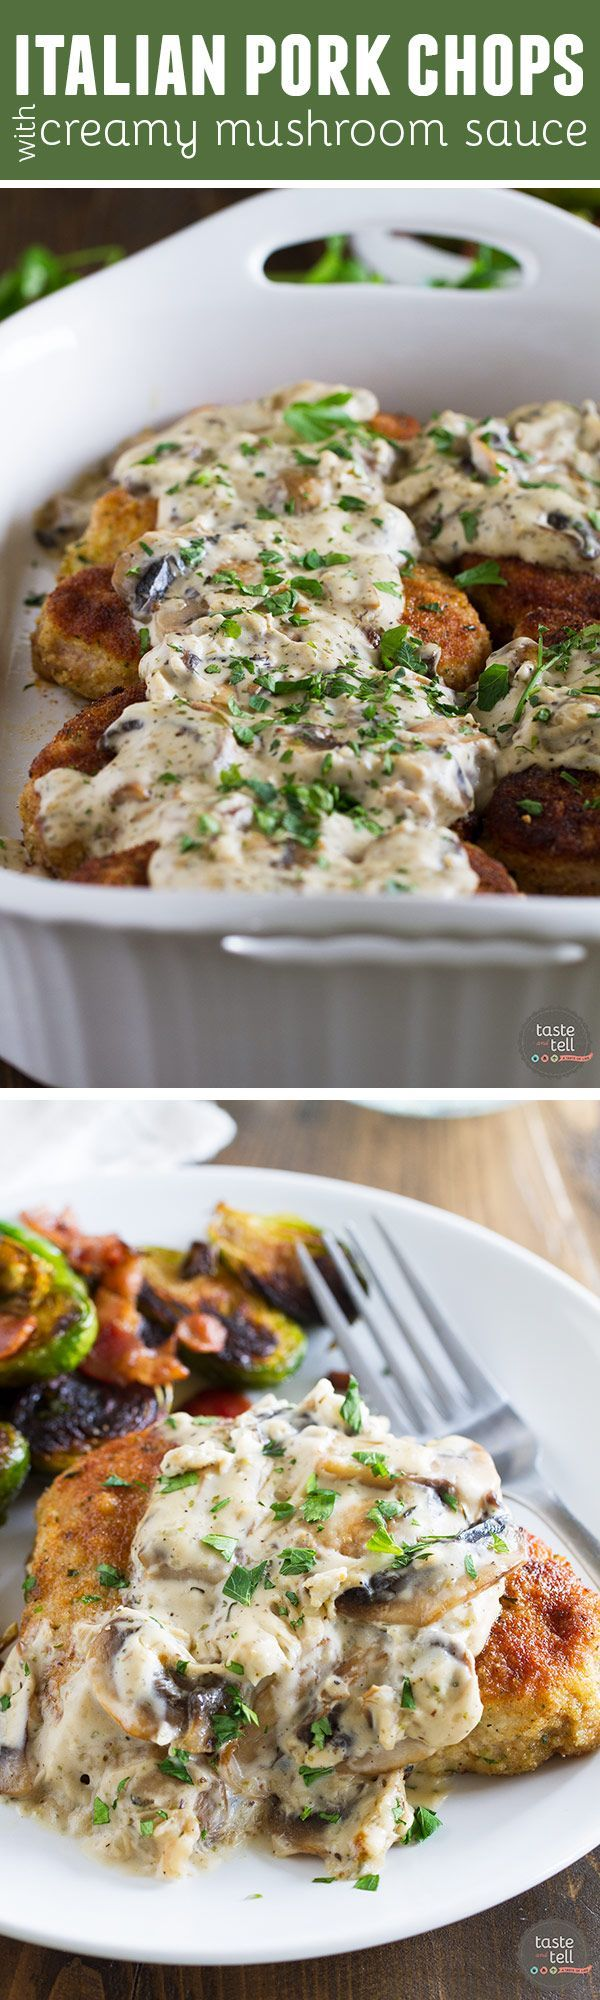 Pork chops are breaded in Italian breadcrumbs and served with a creamy mushroom sauce in this delicious dinner idea. These Italian Pork Chops with Creamy Mushroom Sauce will become an instant favorite!